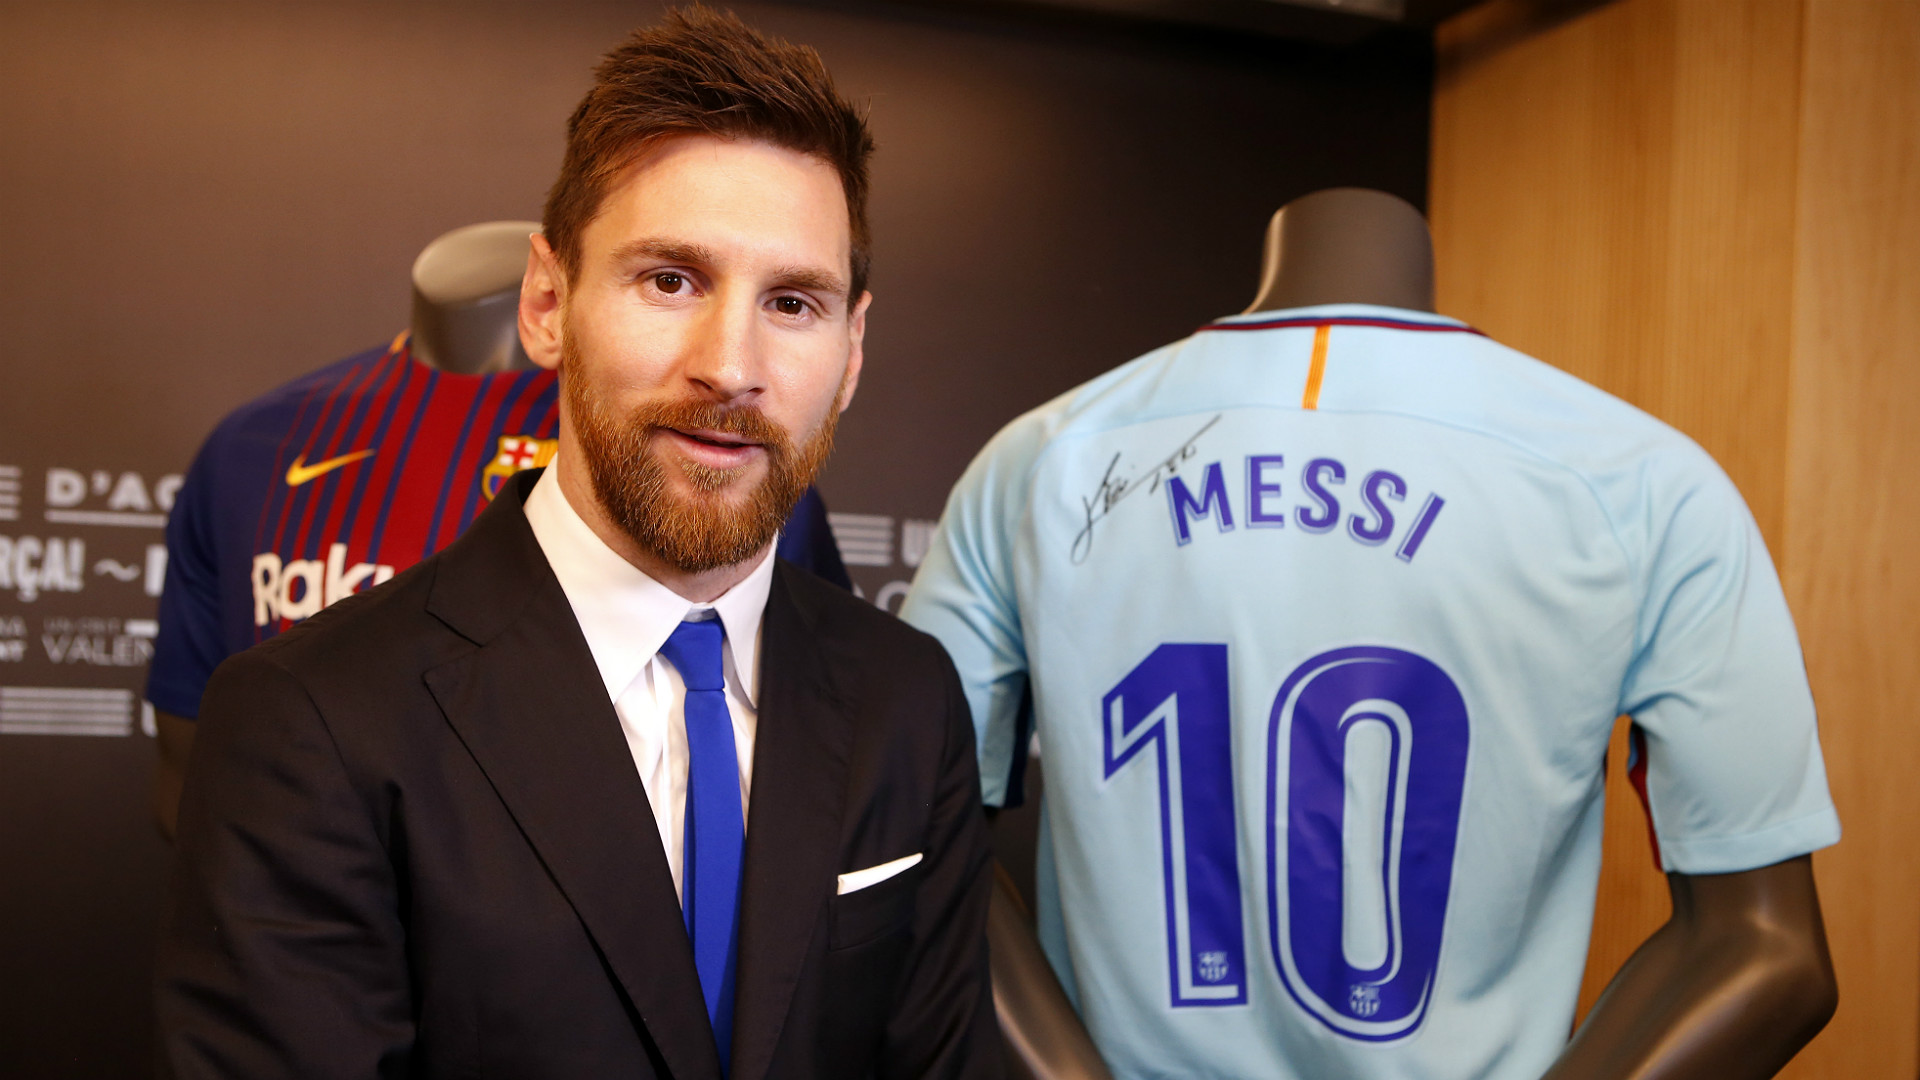 No 'super contract' for Messi at Barcelona with new deal